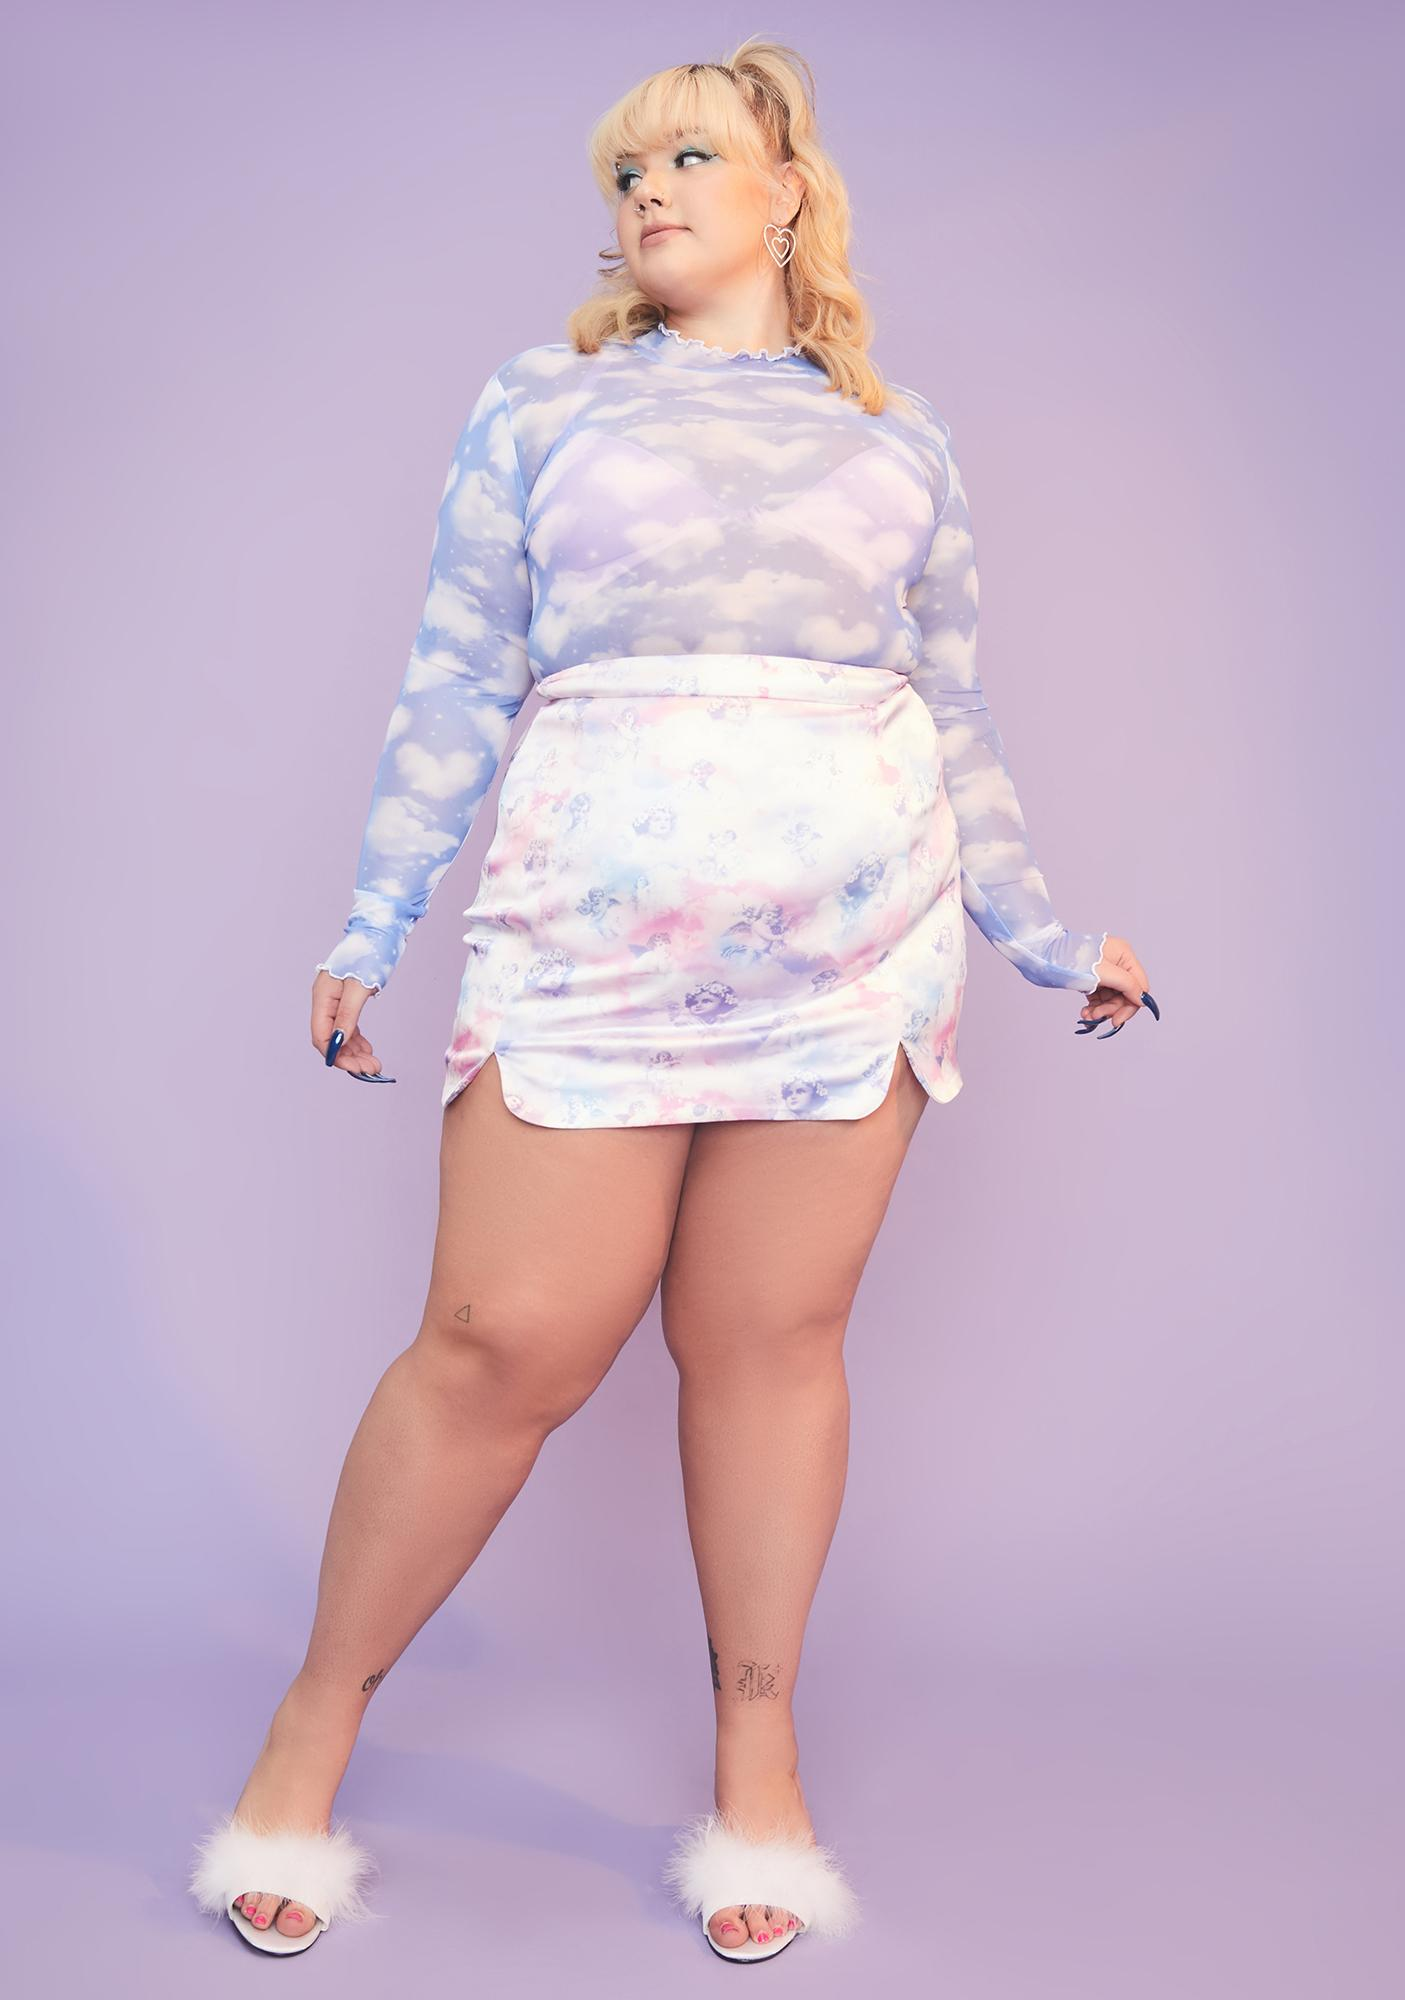 Sugar Thrillz Always Dreaming Of You Mesh Top